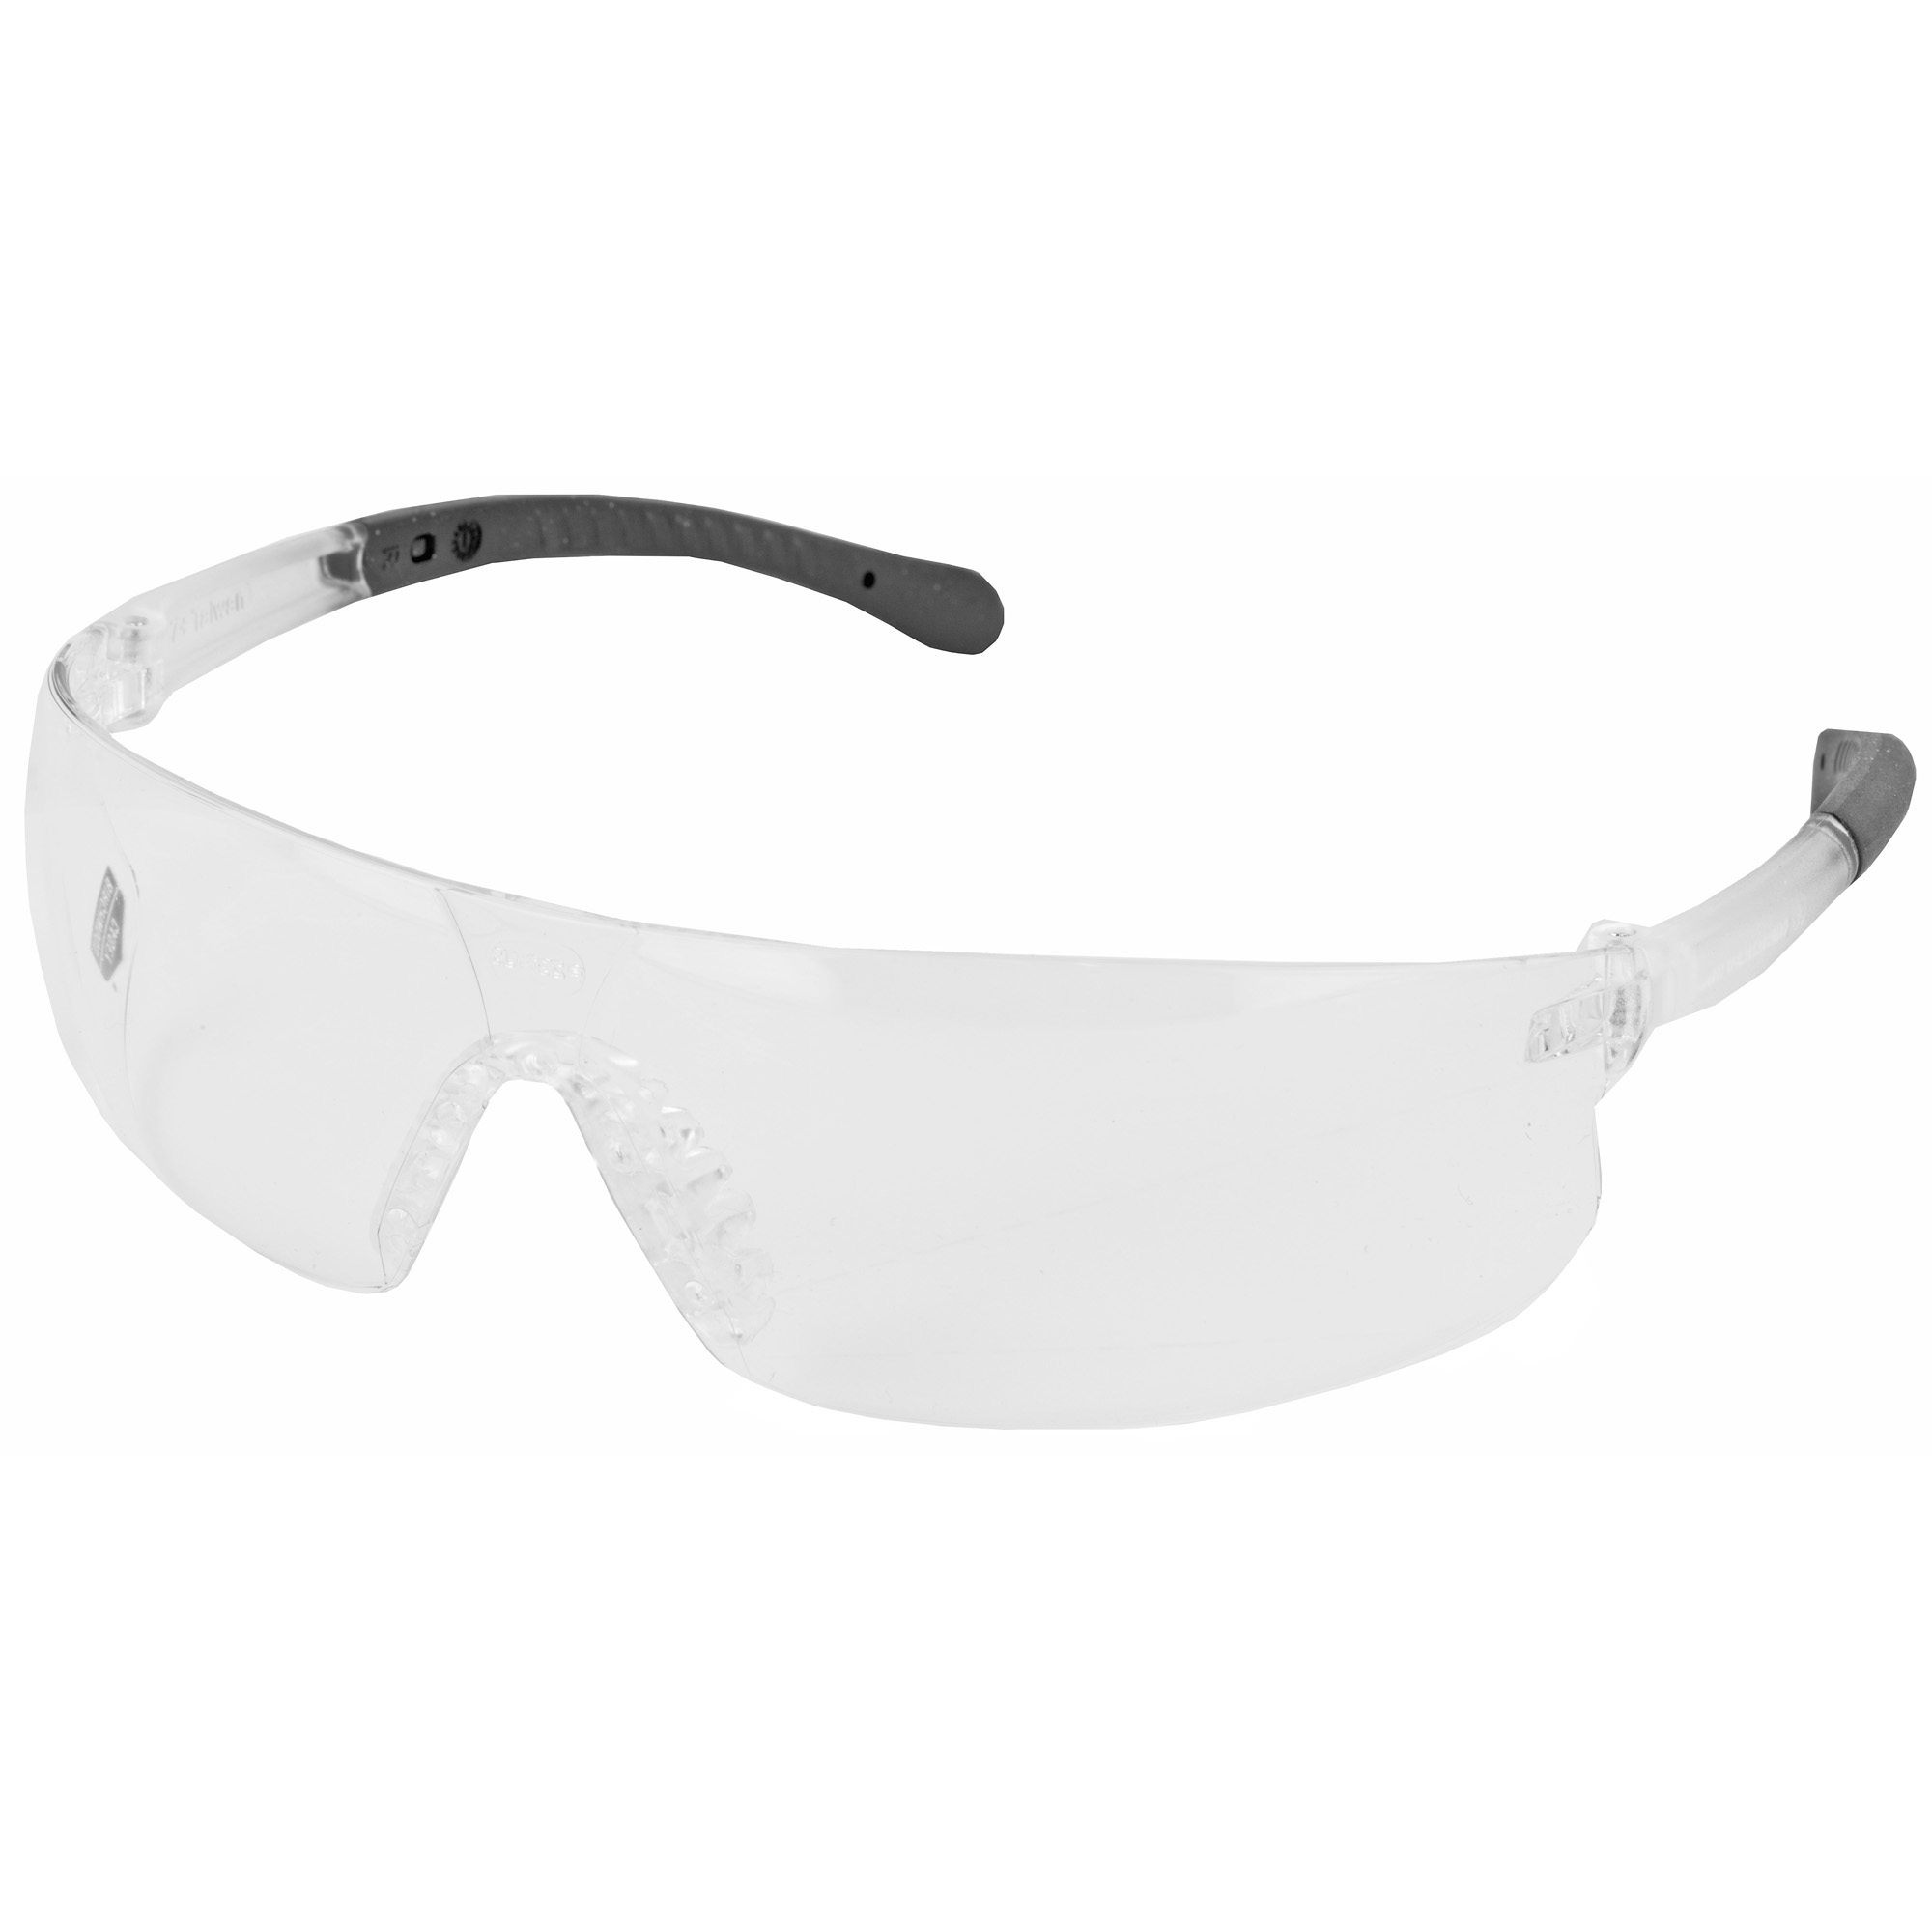 "Birchwood Casey Lycus Glasses are constructed of polycarbonate for maximum protection and feature soft"" rubberized temples and an anti-slip nose piece. Also includes a set of foam ear plugs for a total eye and ear protection package."